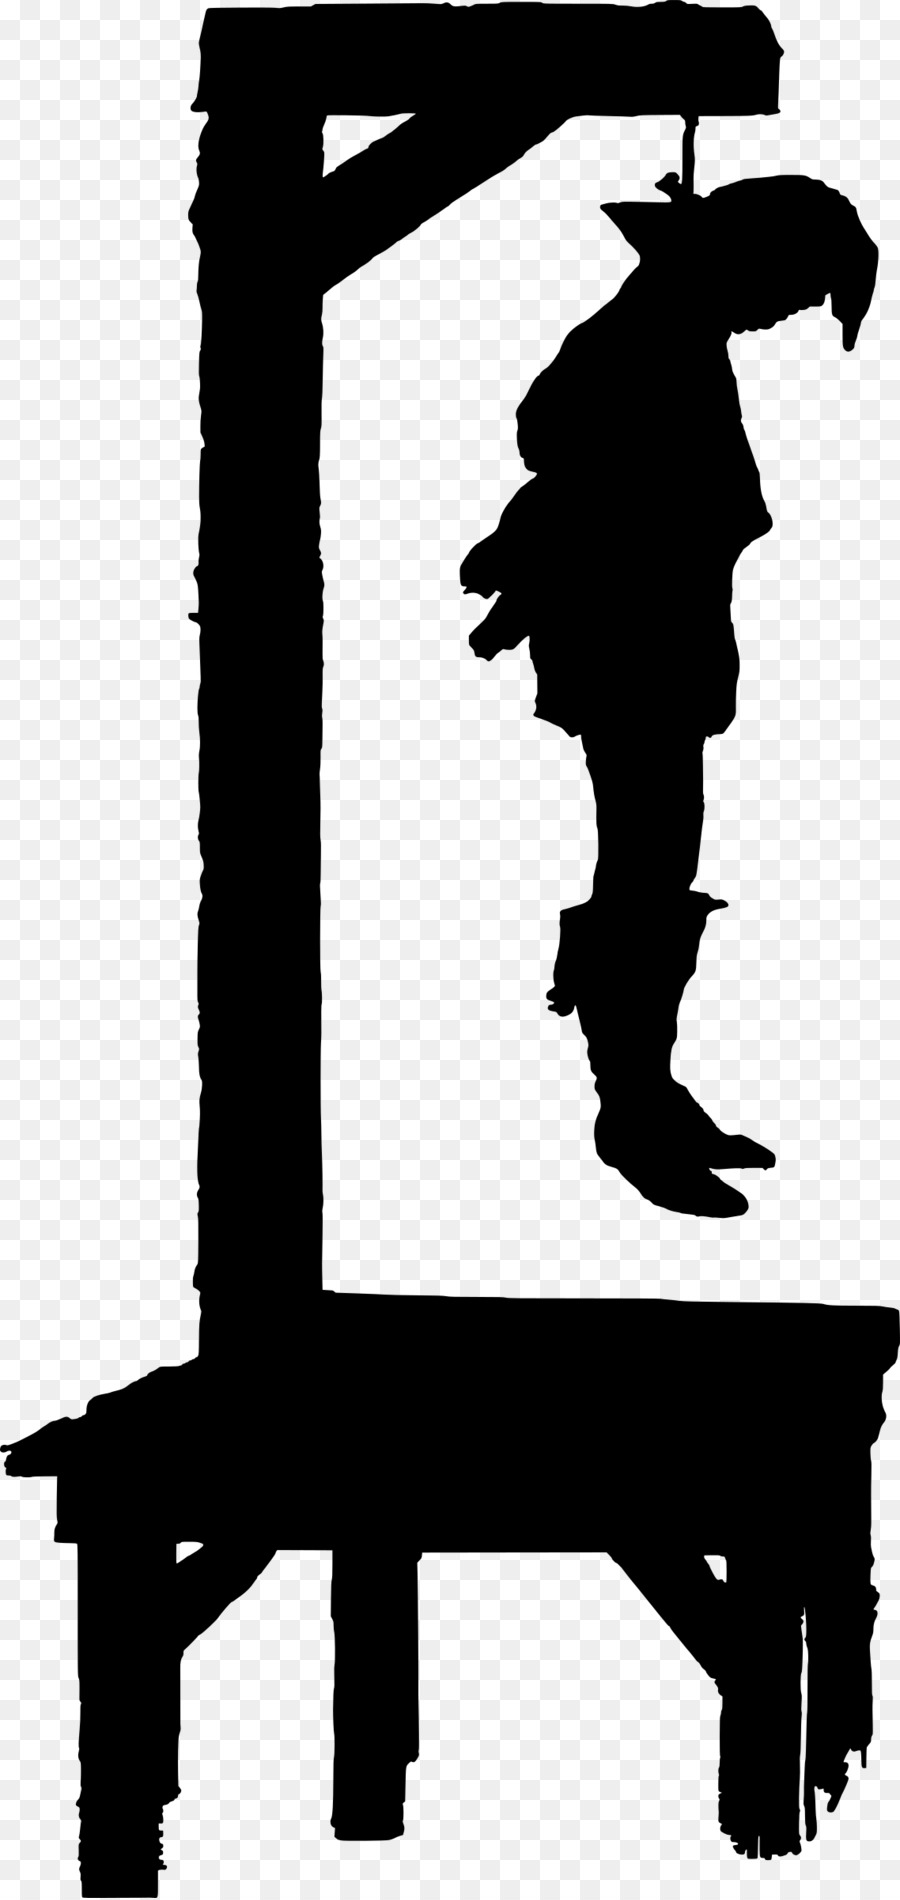 The Hanged Man Predictive Tarot Card Meanings: Capital Punishment Execution By Firing Squad Hanging Clip